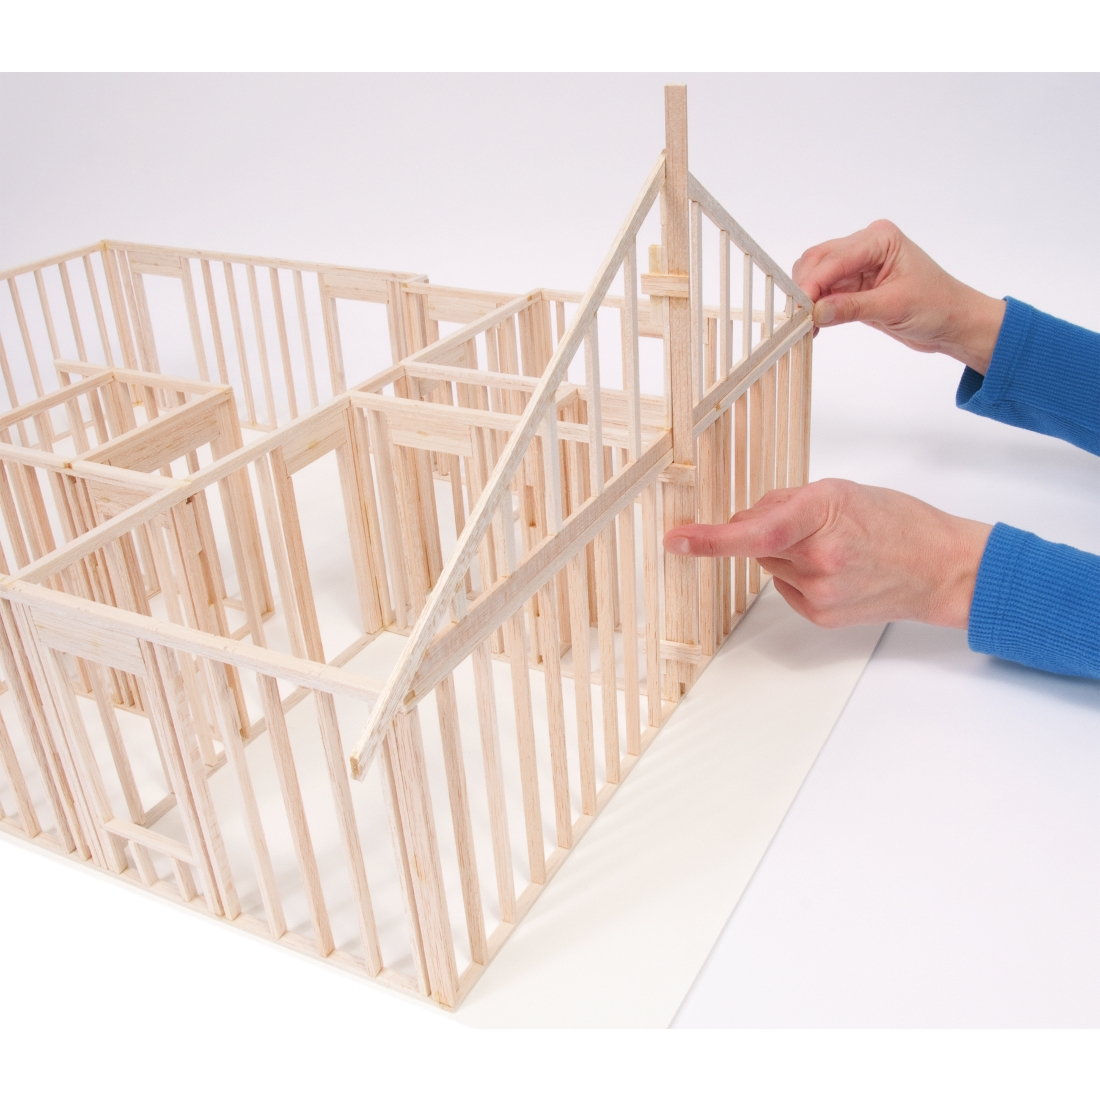 Plans to build Balsa Wood House Kits PDF Plans